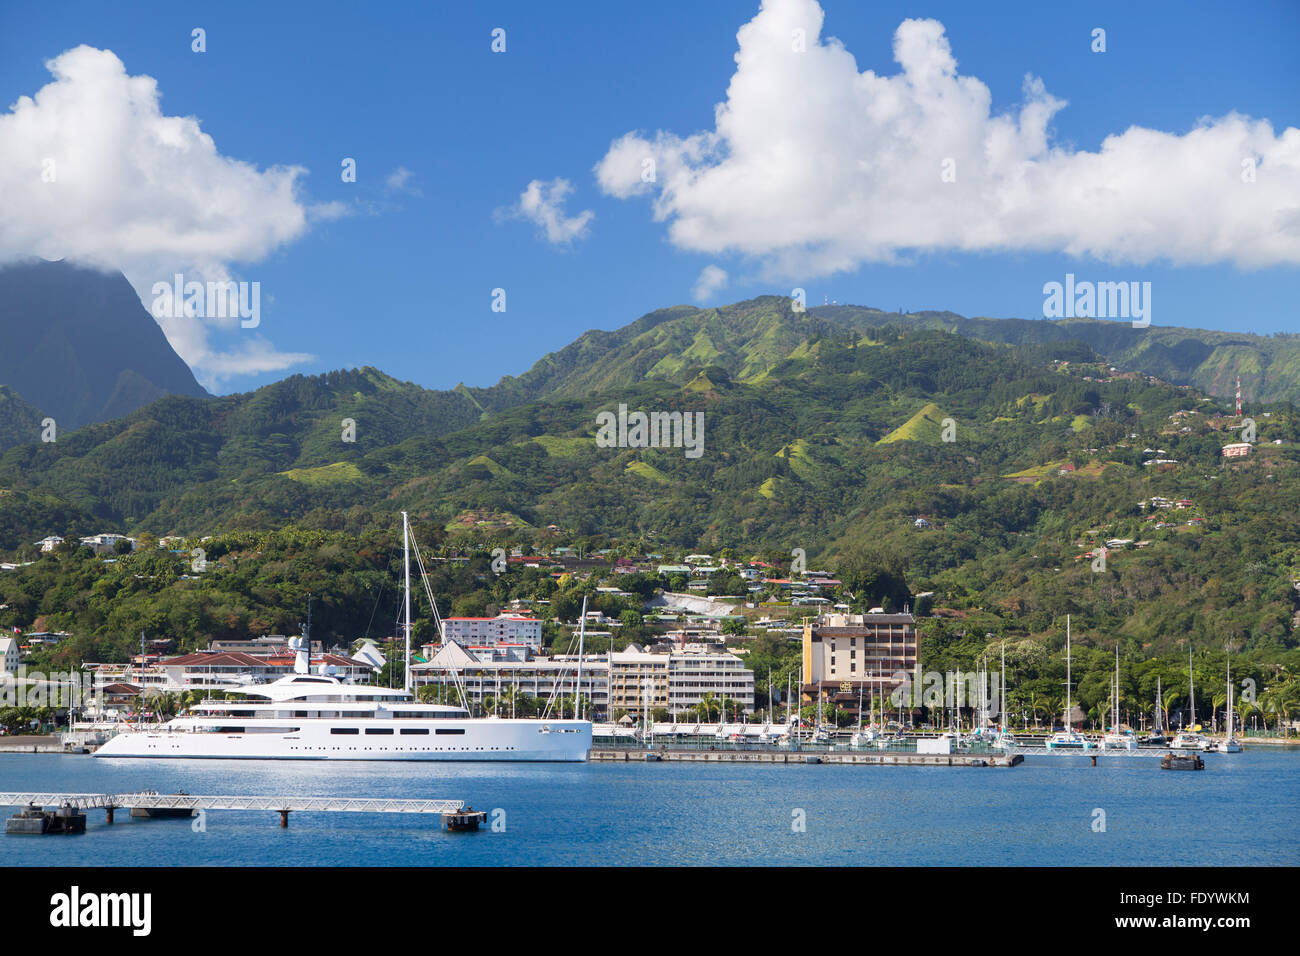 Yacht in harbour, Pape'ete, Tahiti, French Polynesia - Stock Image